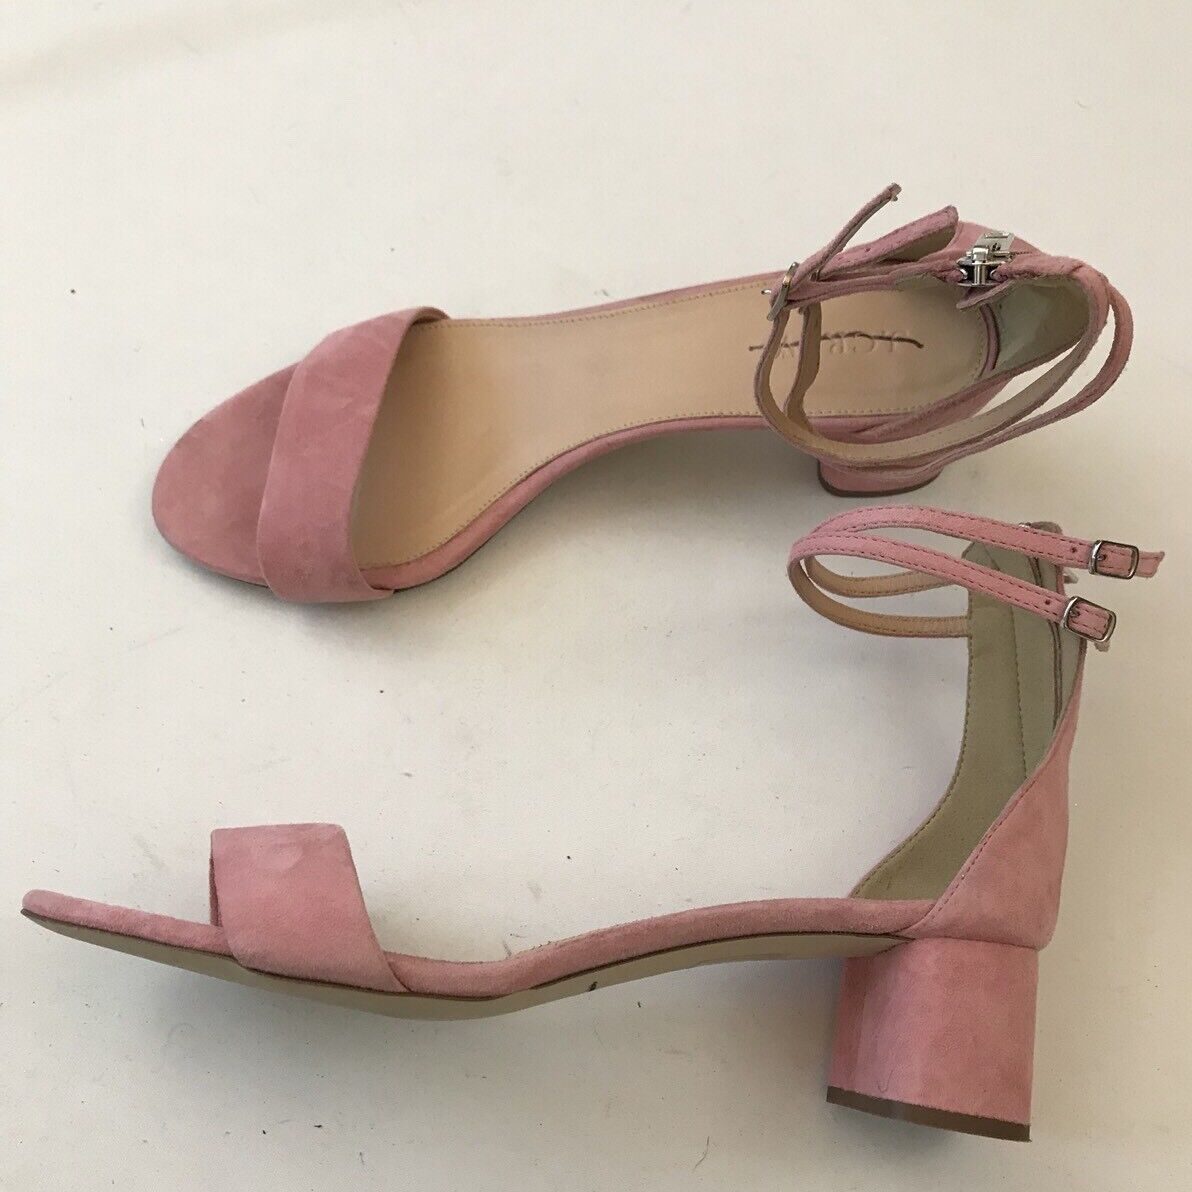 J.CREW SUEDE DOUBLE ANKLE-STRAP SANDALS SANDALS SANDALS SIZE 9 FRESH PEONY G0981 214fe8